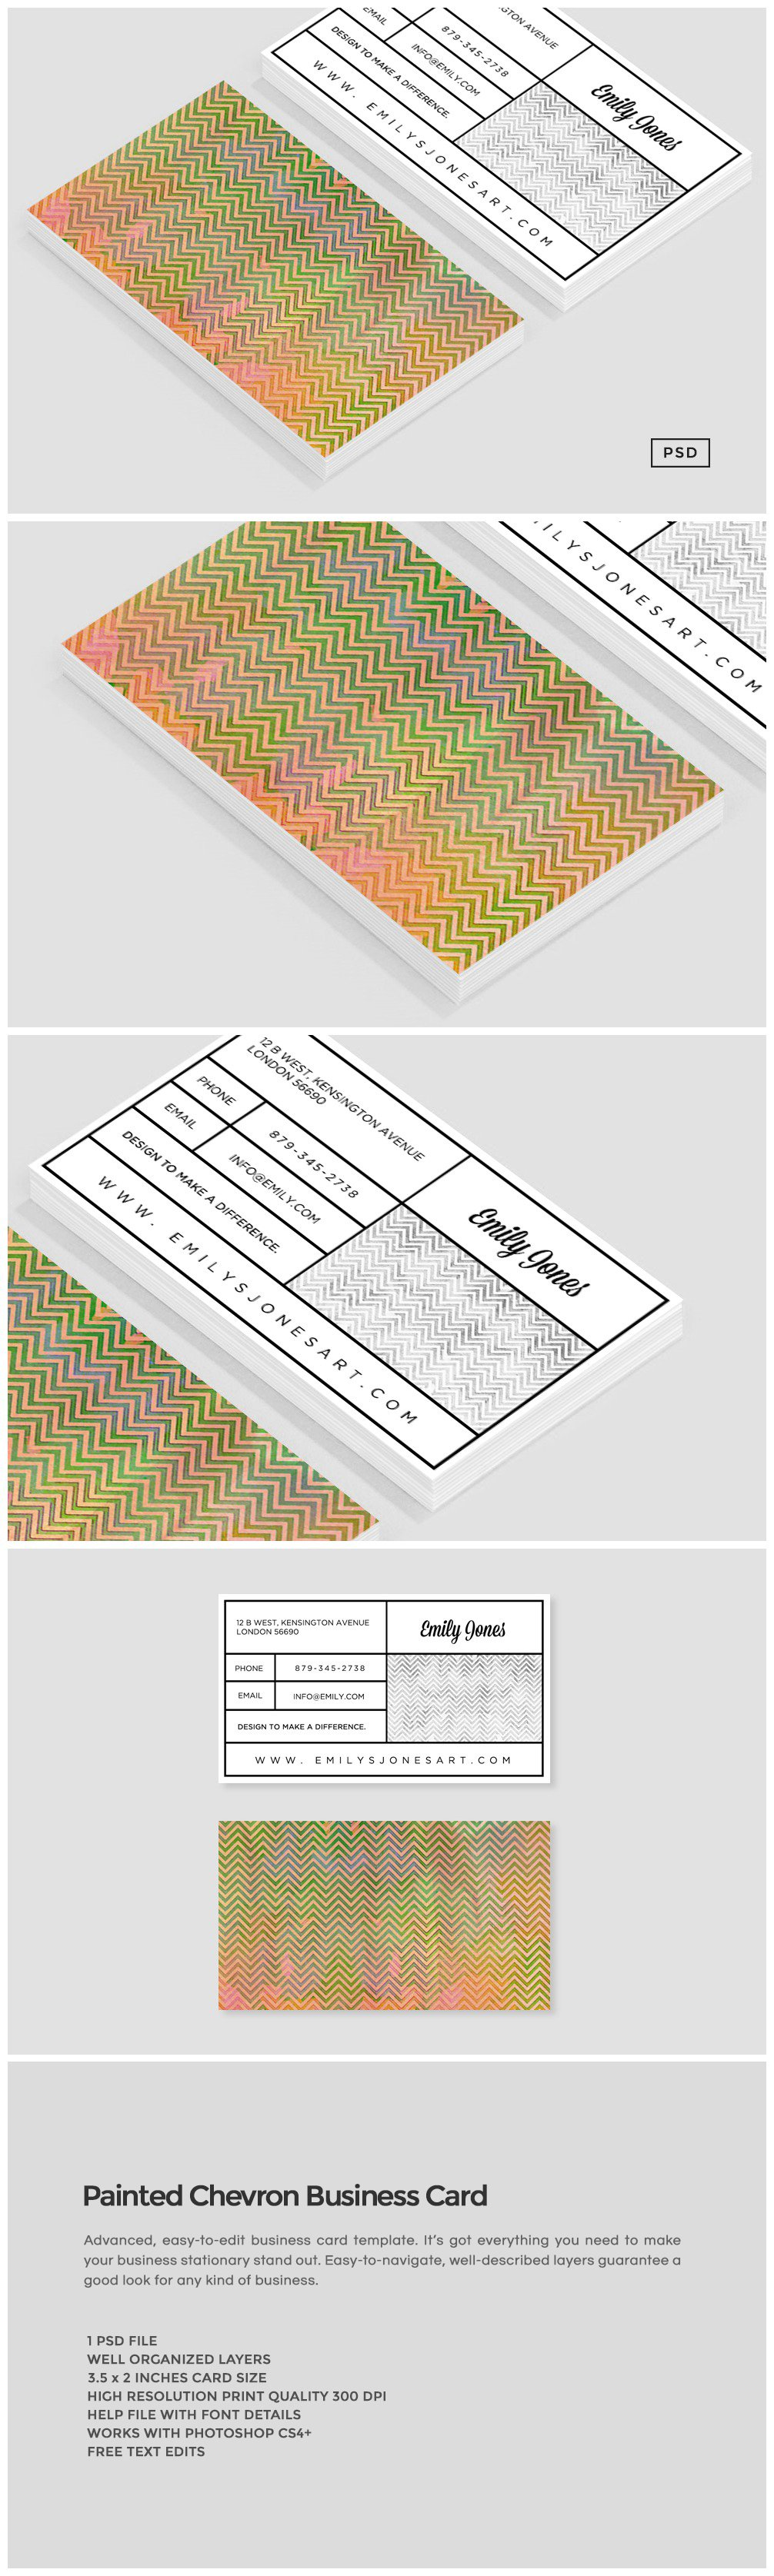 Painted Chevron Business Card Business Card Templates Creative